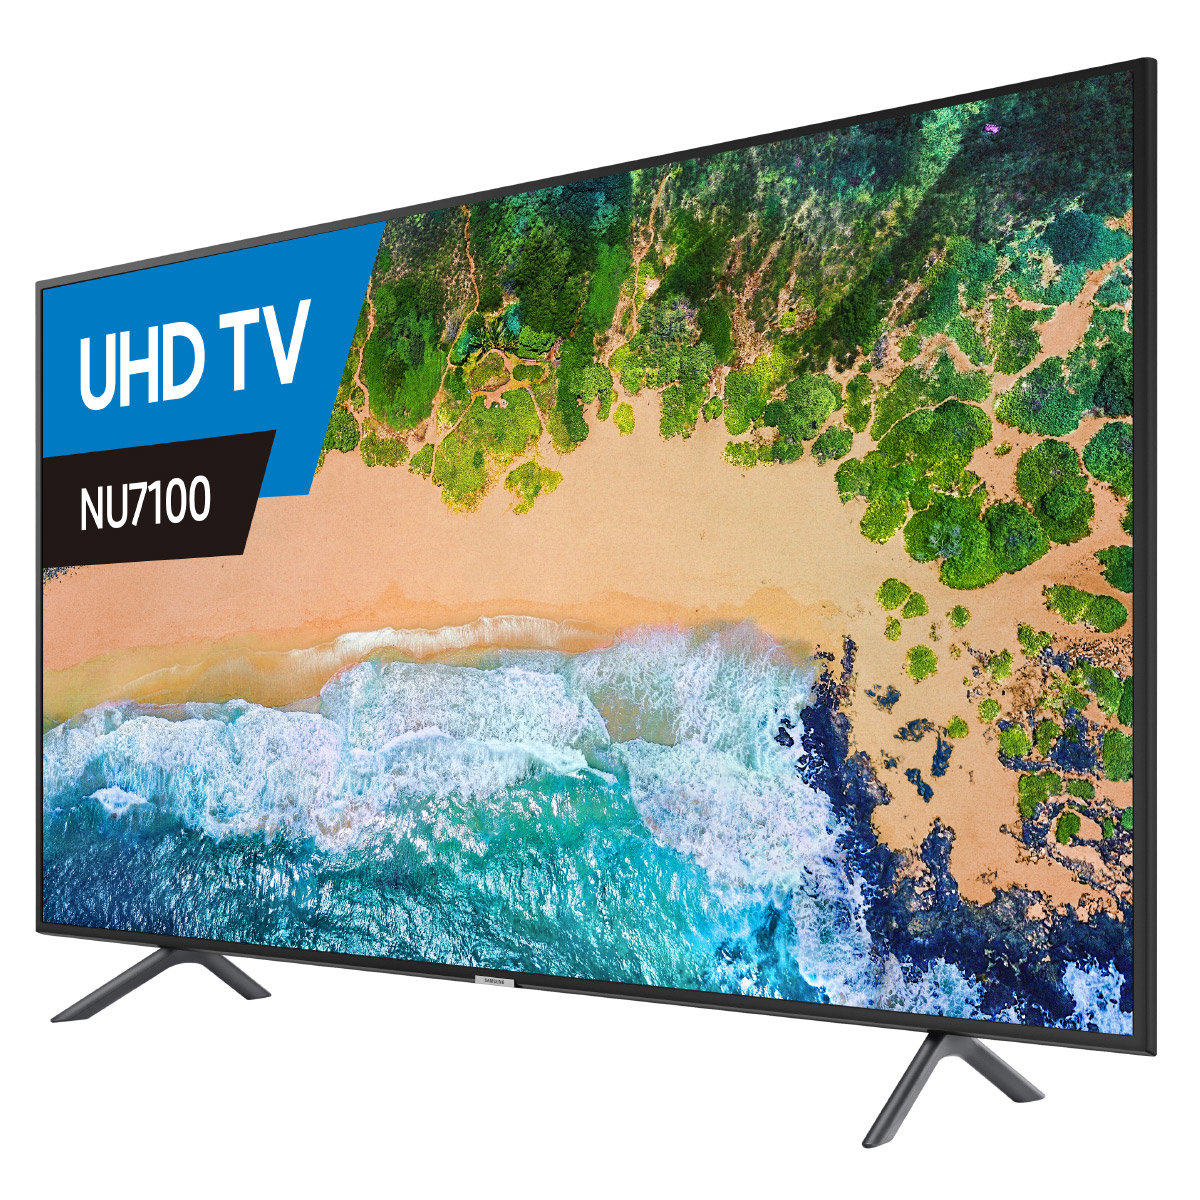 Samsung Ua55nu7100 55 Inch 139cm Smart 4k Ultra Hd Led Lcd Tv